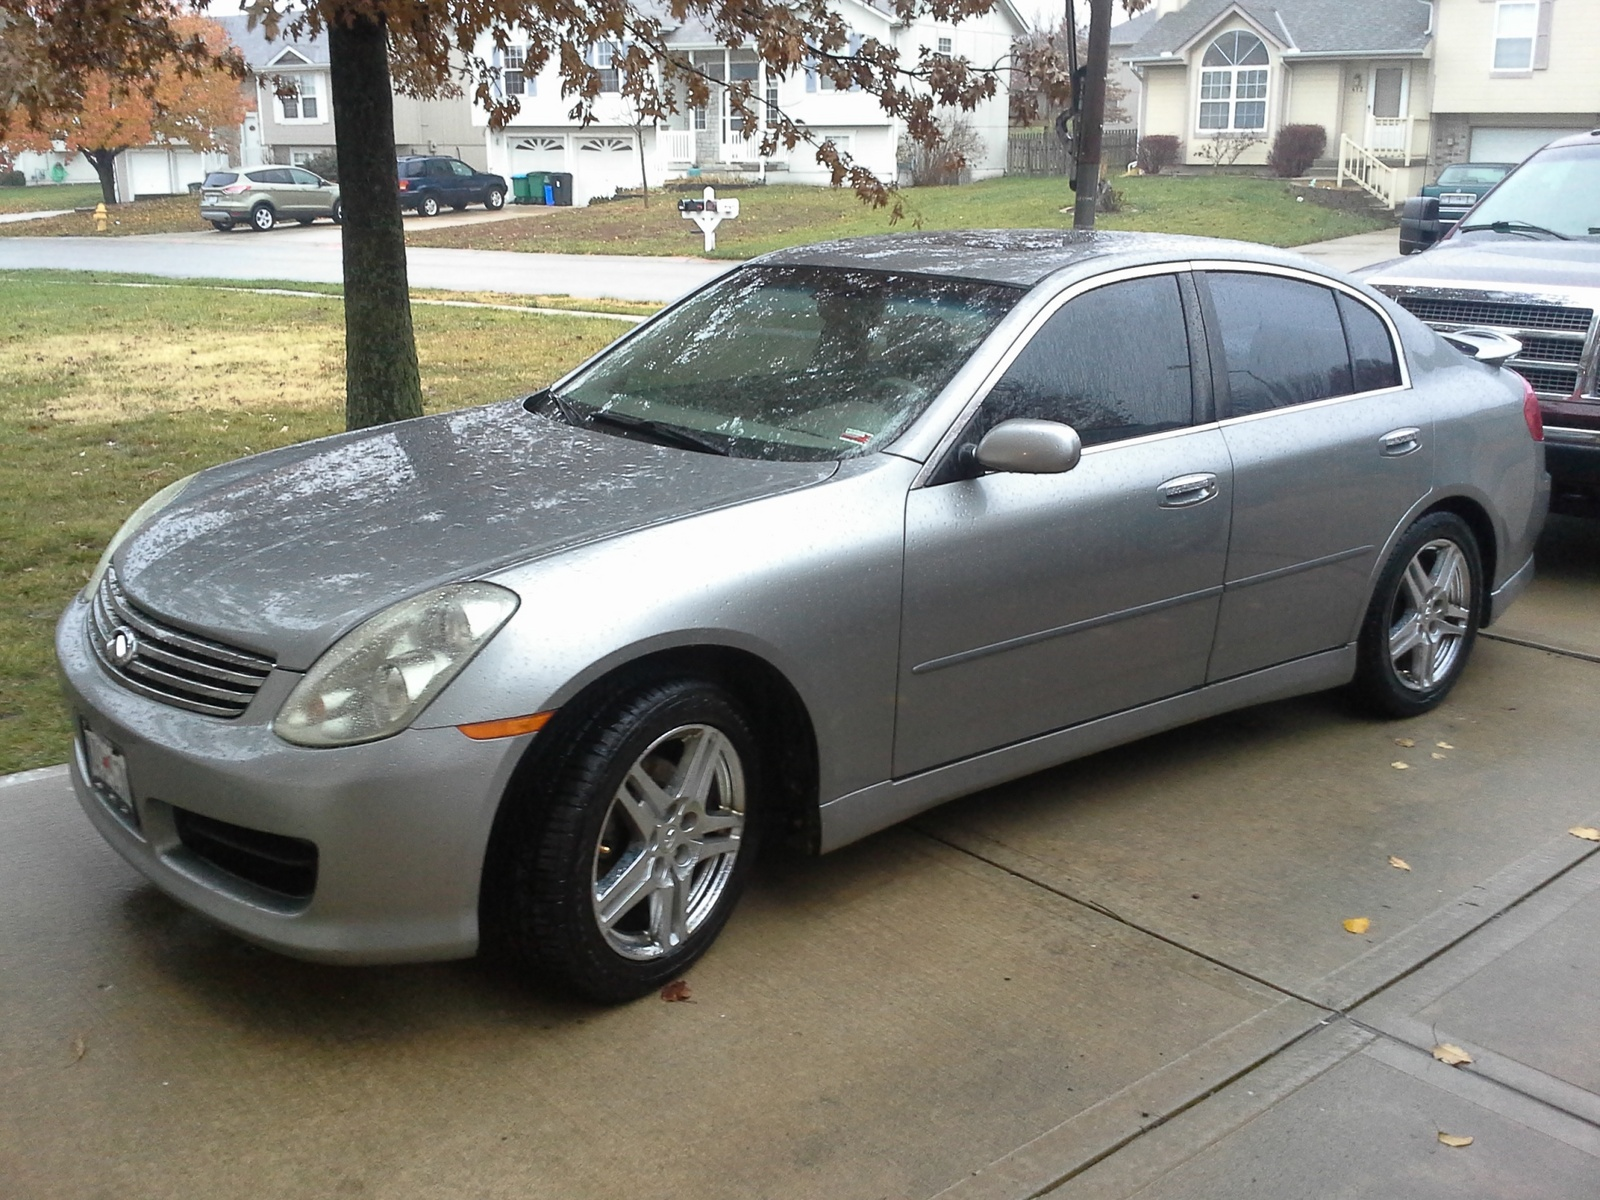 2004 infiniti g35 coupe specs pictures to pin on pinterest. Black Bedroom Furniture Sets. Home Design Ideas